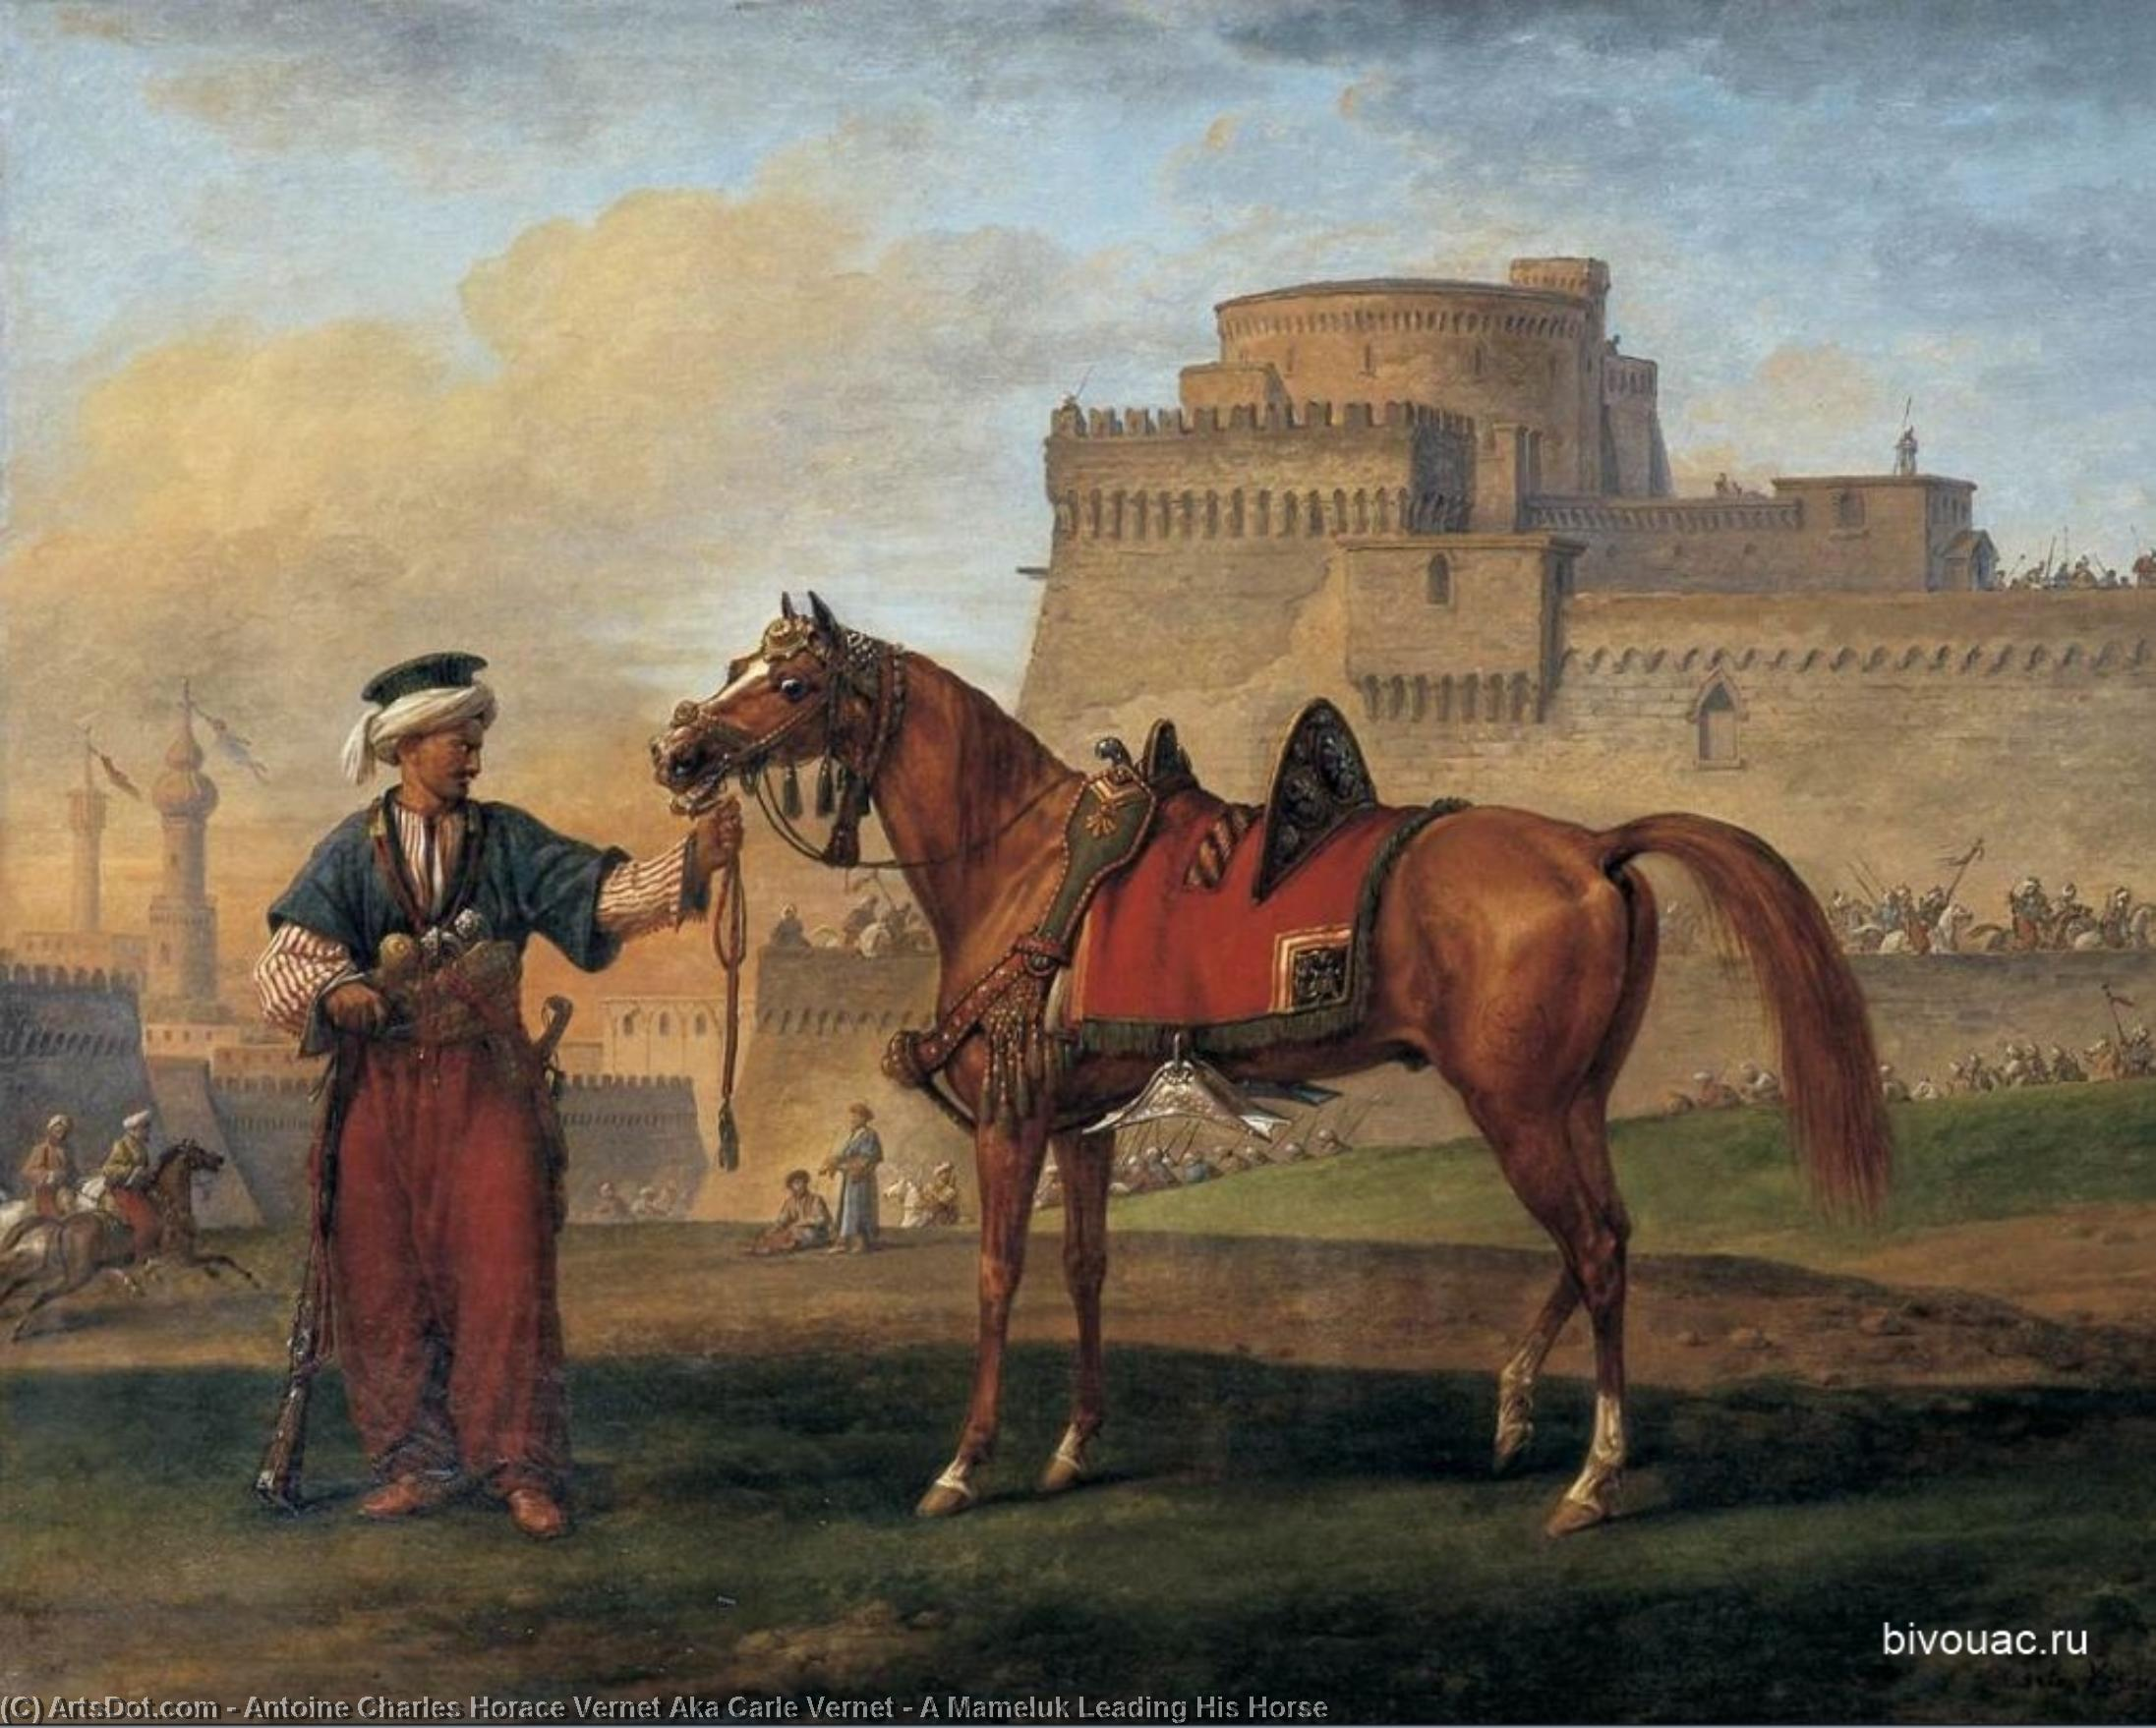 A Mameluk Leading His Horse by Antoine Charles Horace Vernet Aka Carle Vernet (1758-1836, France) | Art Reproduction | ArtsDot.com